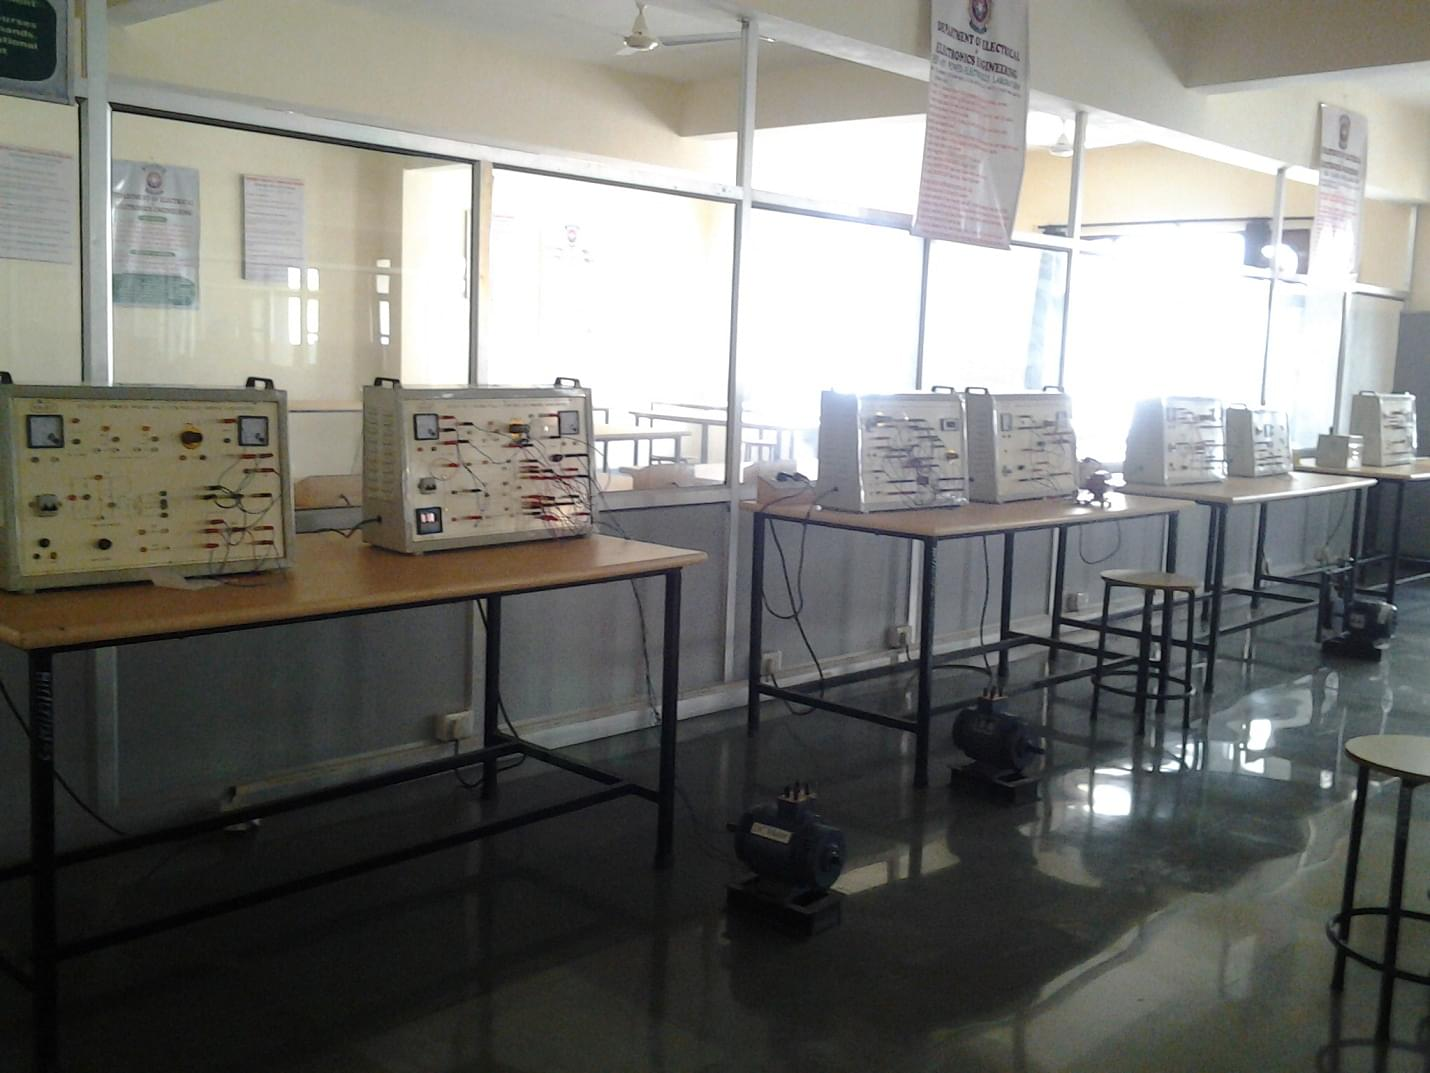 Kikam Technical Institute Home: Allenhouse Institute Of Technology, Kanpur